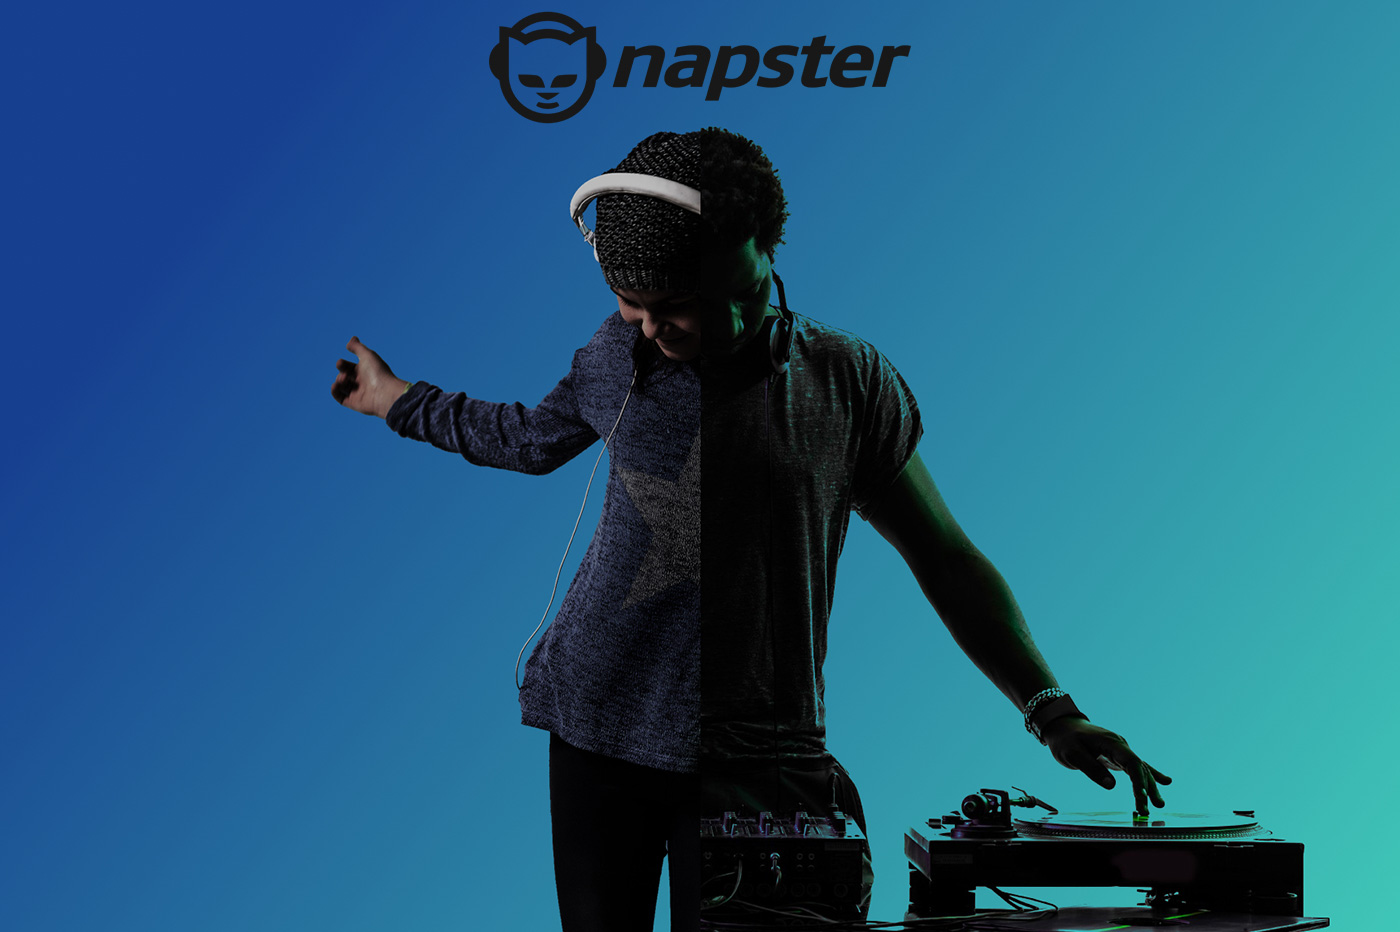 Napster musique